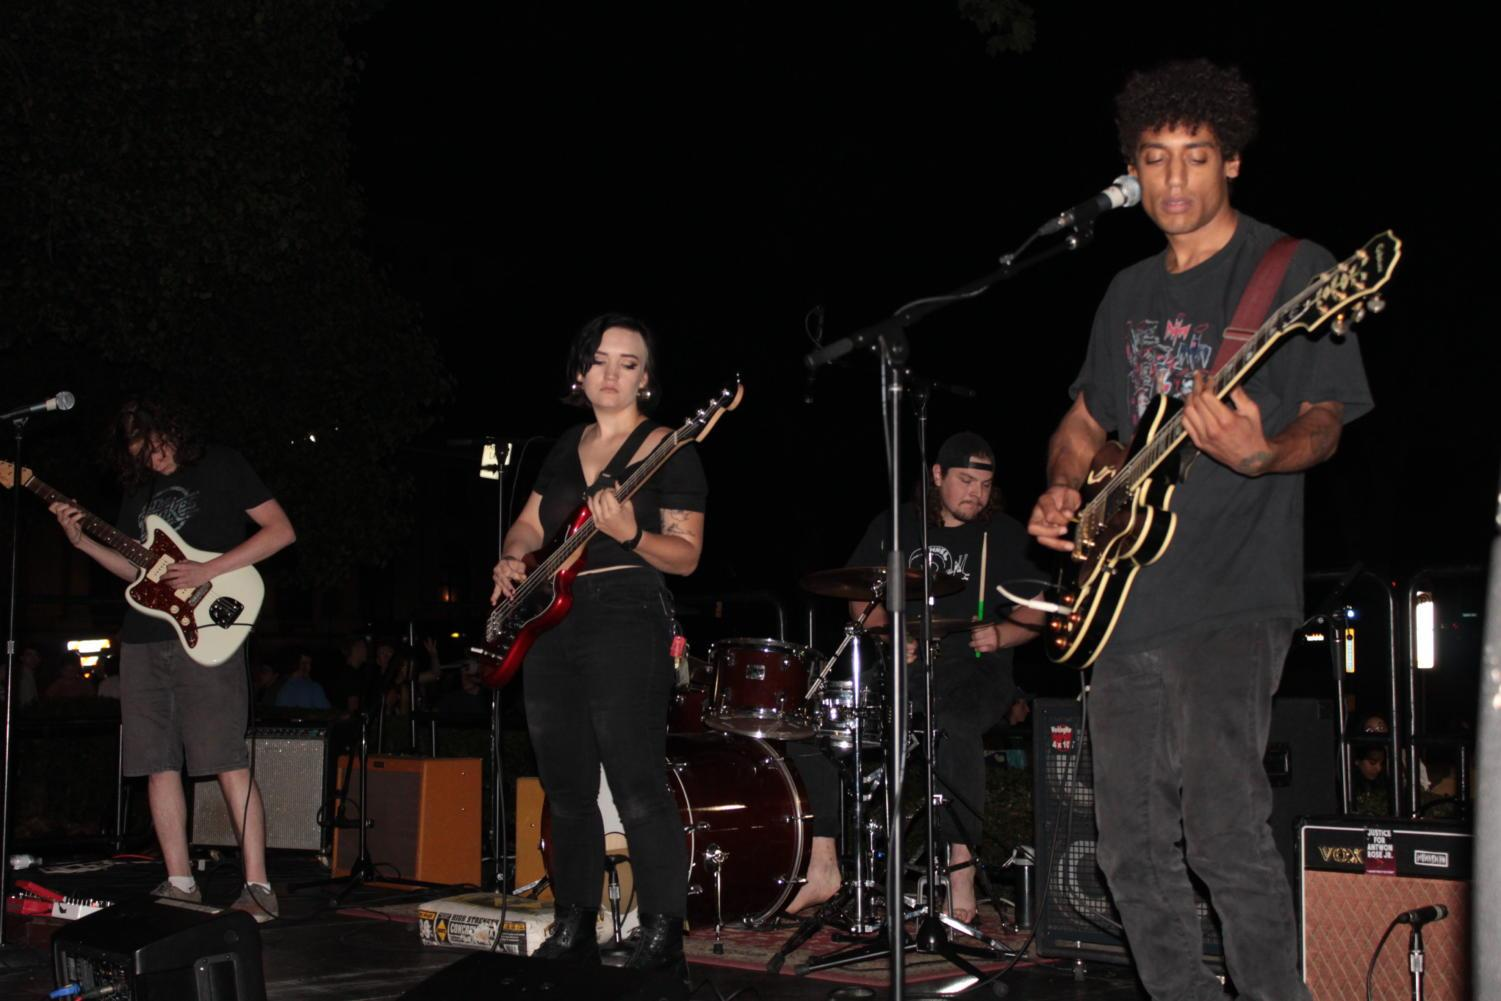 Punk band Sleeping Witch and Saturn perform at WPTS's Local Music Showcase on William Pitt Union lawn Thursday night. (Photo by Ben Hoover/courtesy of WPTS Radio)